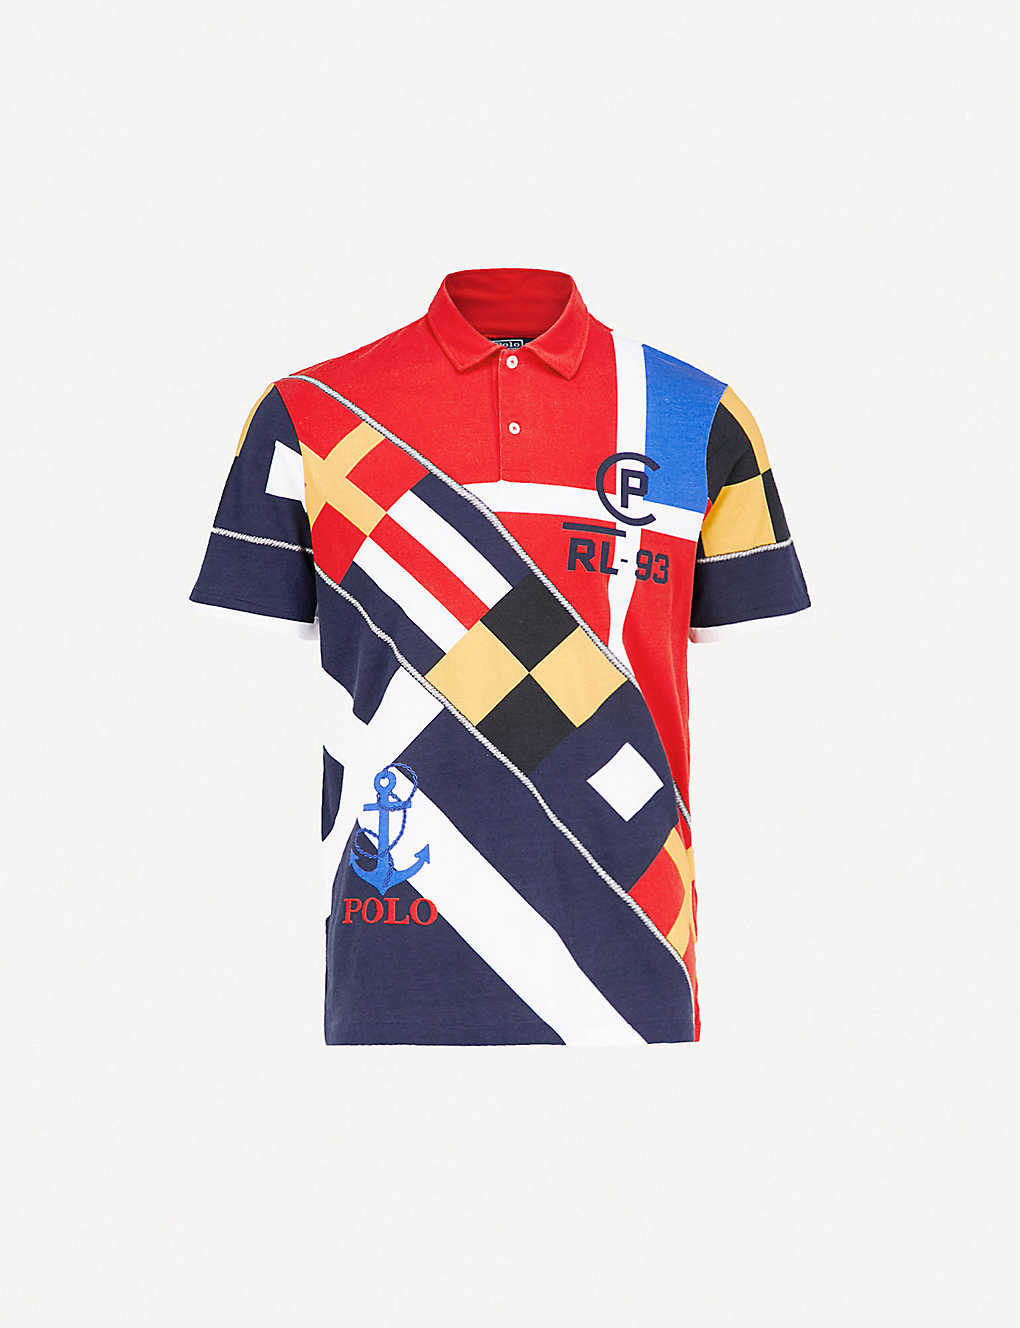 ad4ae6d8b POLO RALPH LAUREN - CP-93 regatta cotton-jersey polo shirt ...